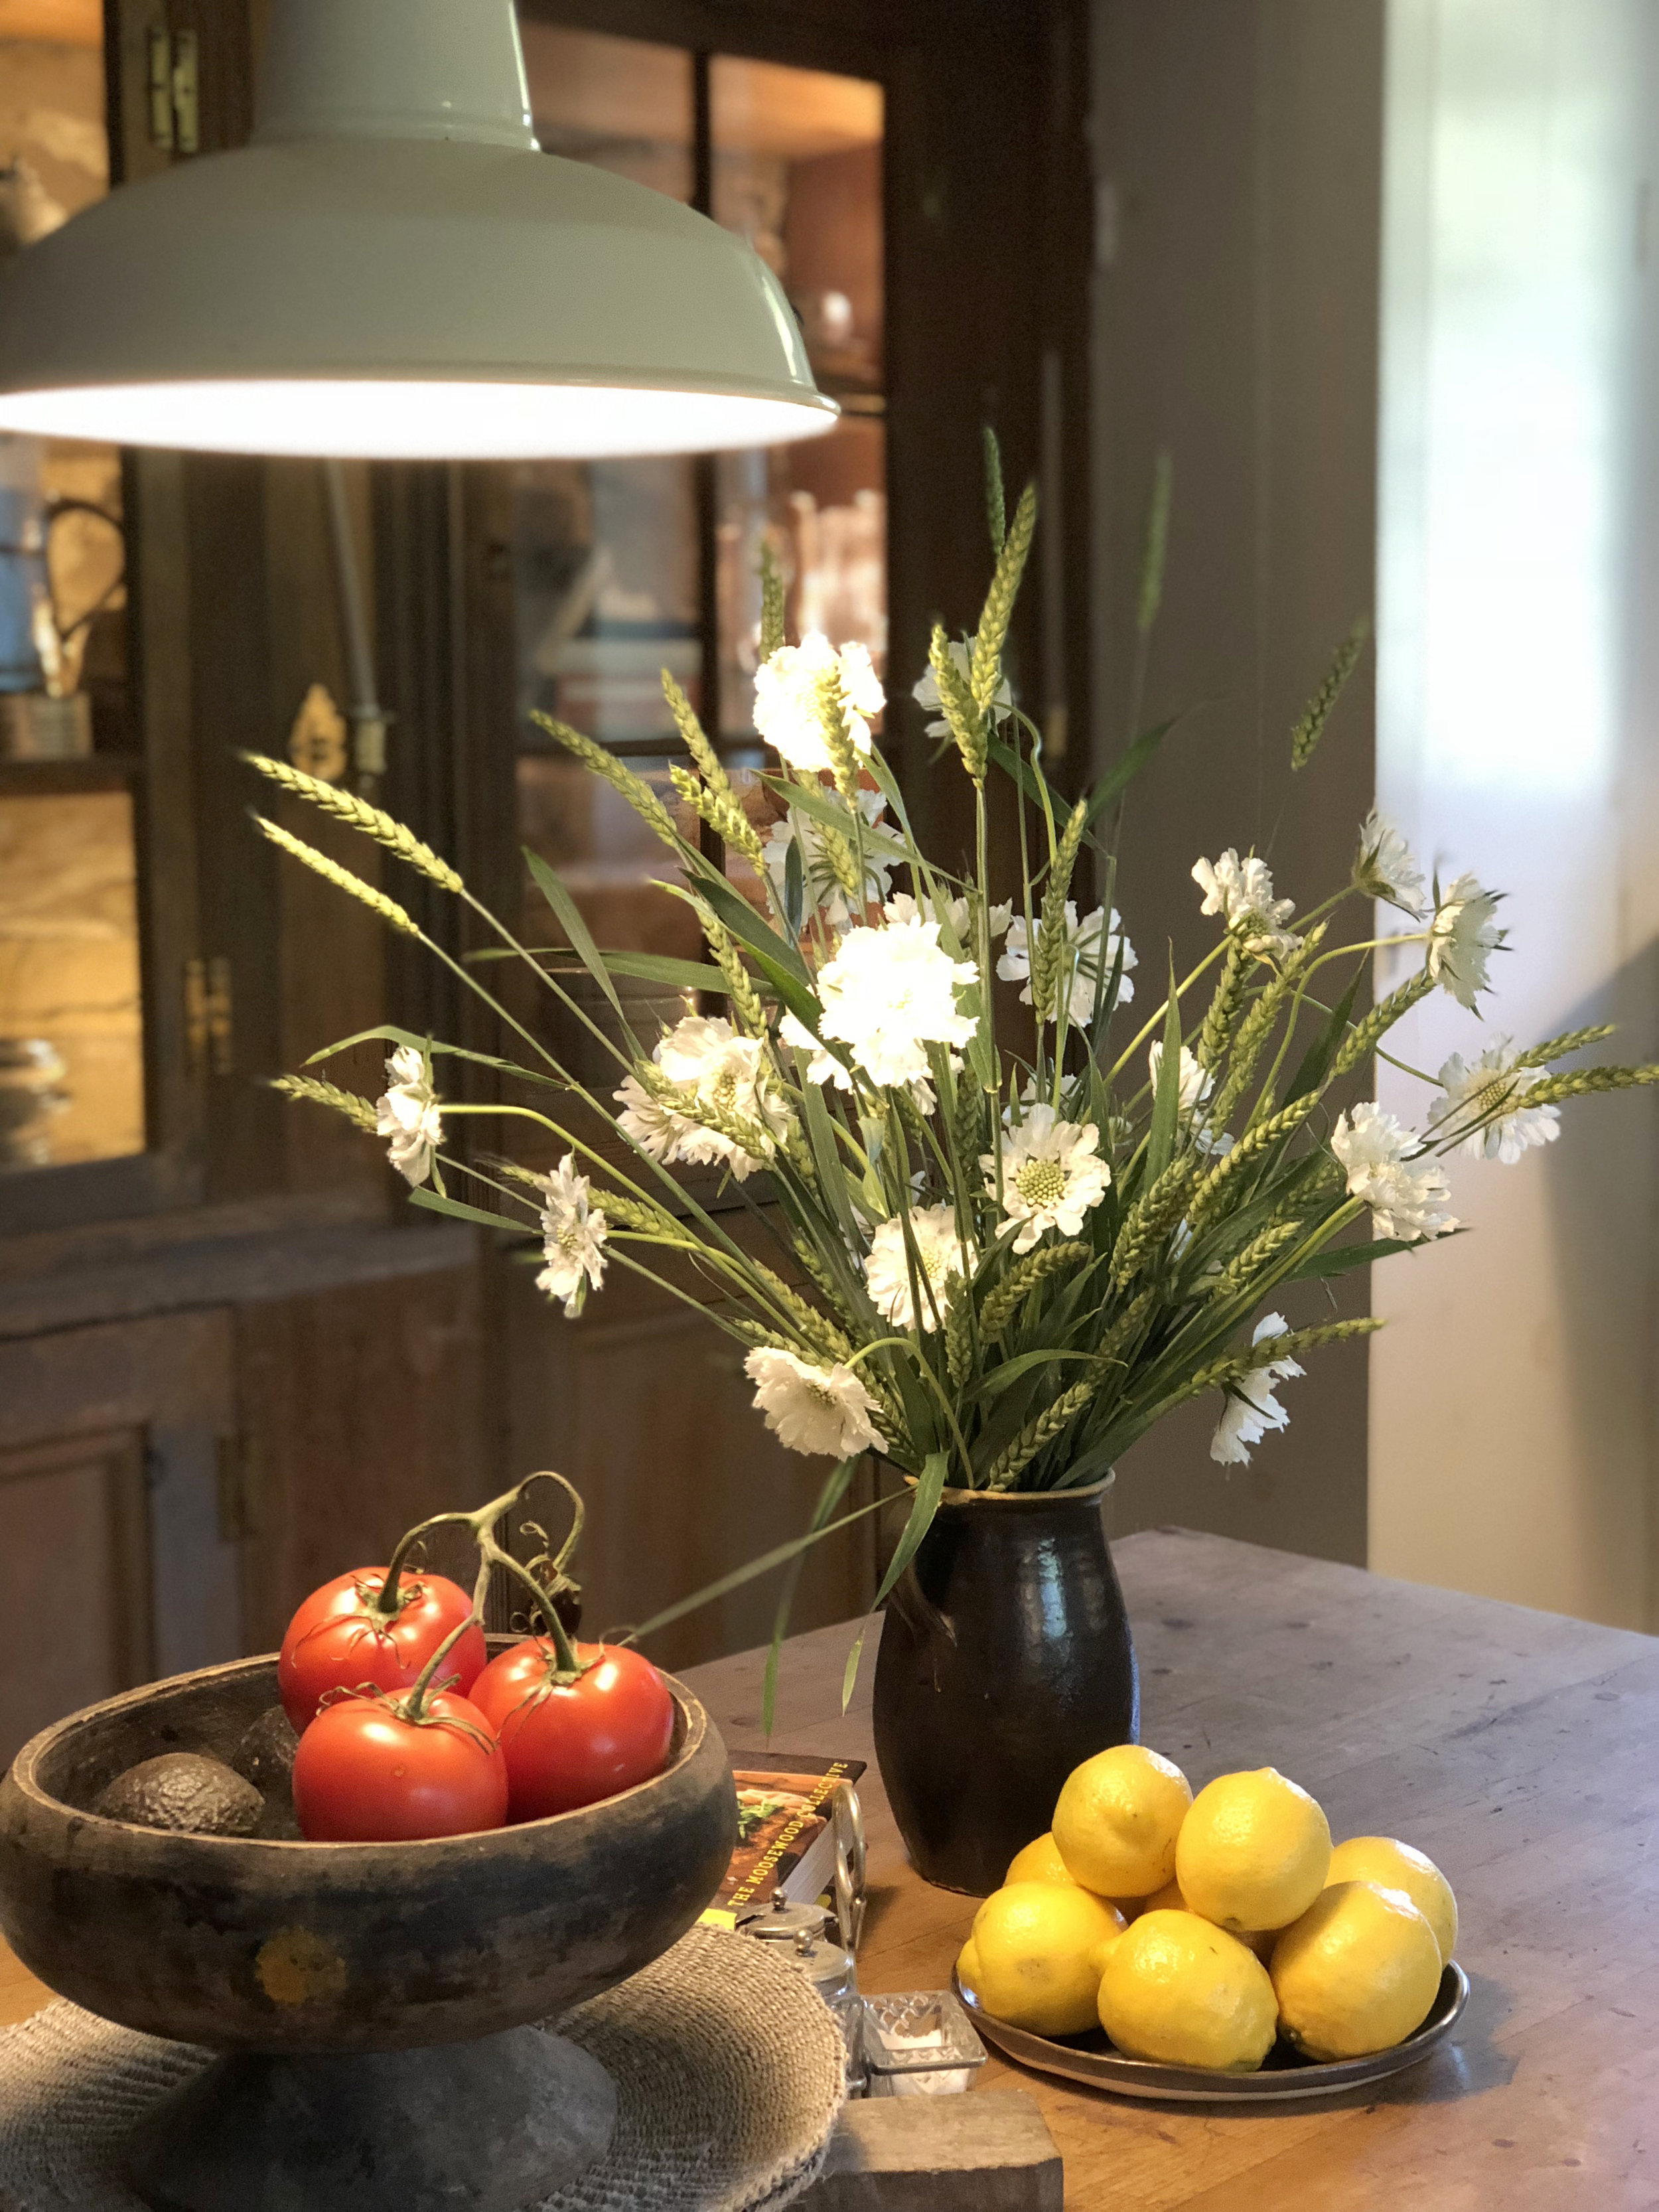 I love the simplicity of white scabiosa and fresh wheat in this sunlit kitchen.